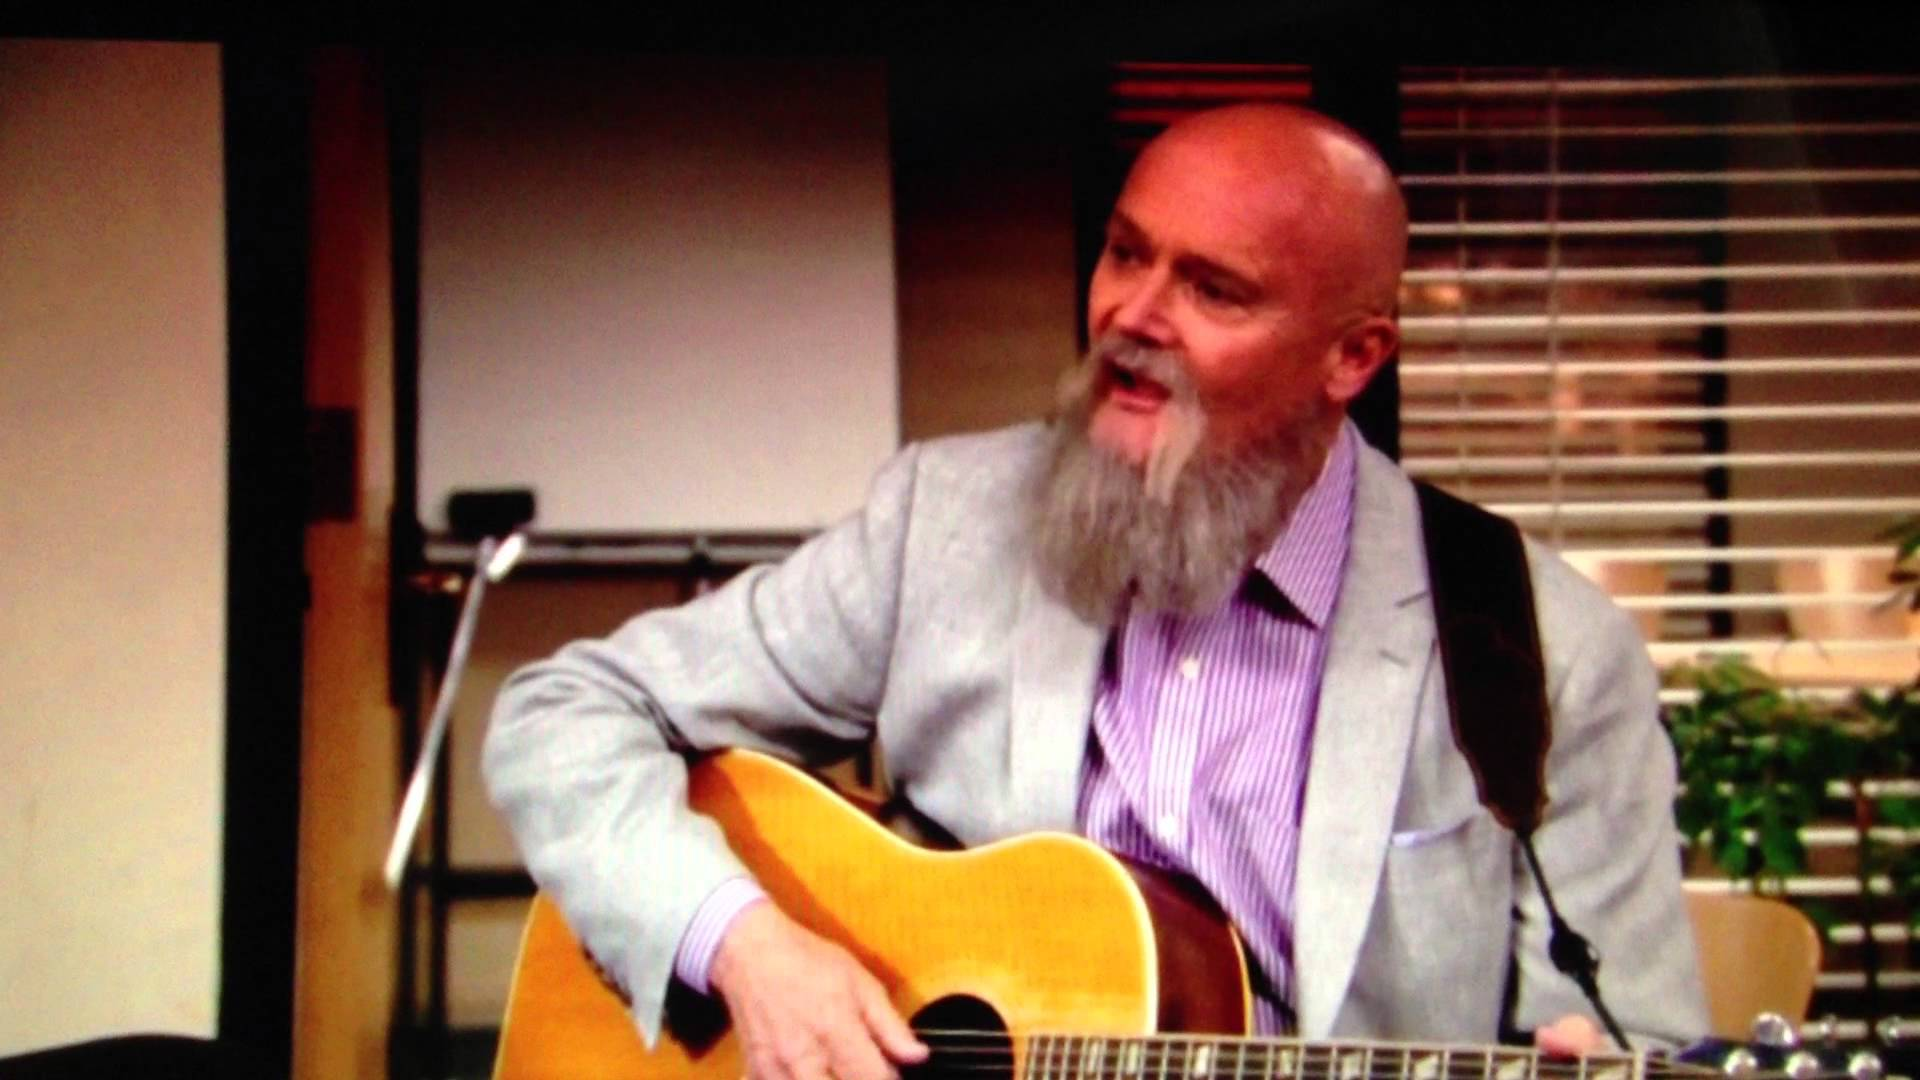 39 the office 39 enlists own cast member creed bratton for series finale song download now - The office season 9 finale ...